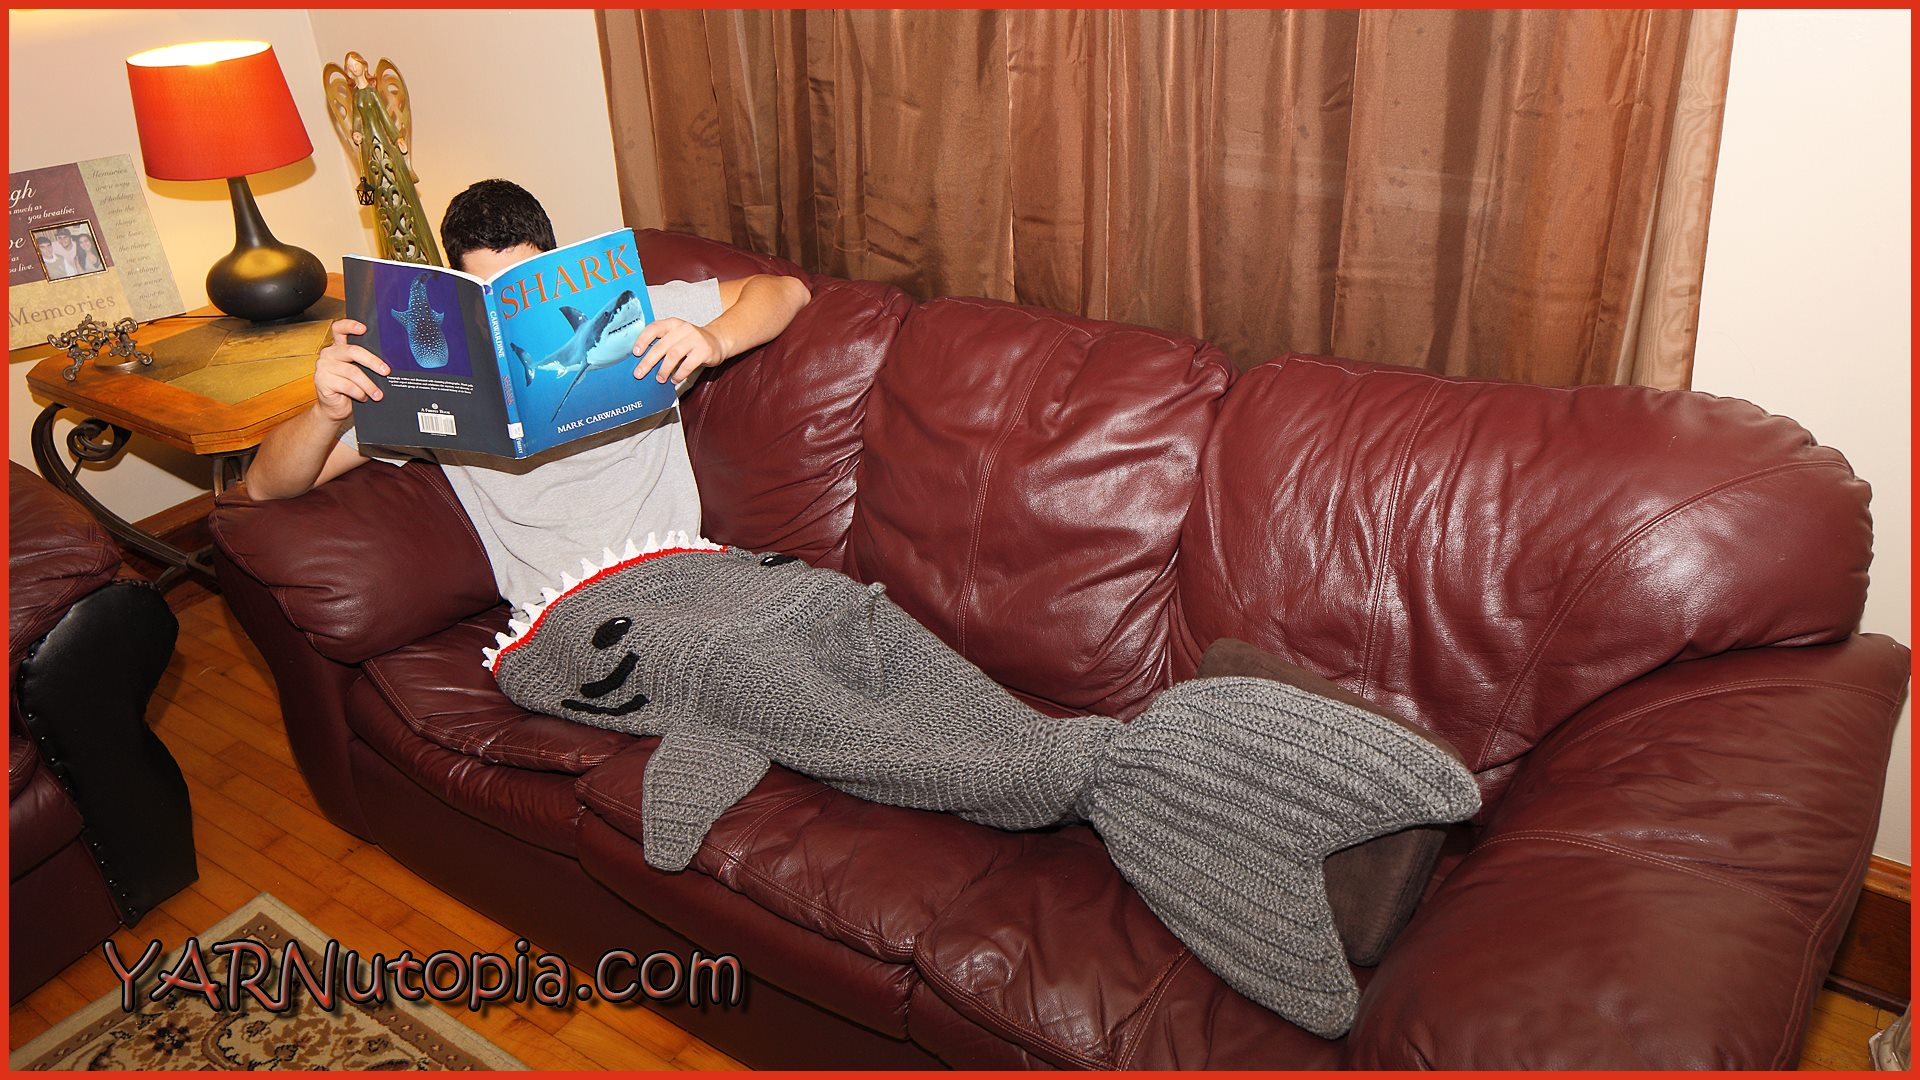 Knitting Pattern For A Shark Blanket : Crochet Tutorial: Adult Shark Blanket   YARNutopia by Nadia Fuad